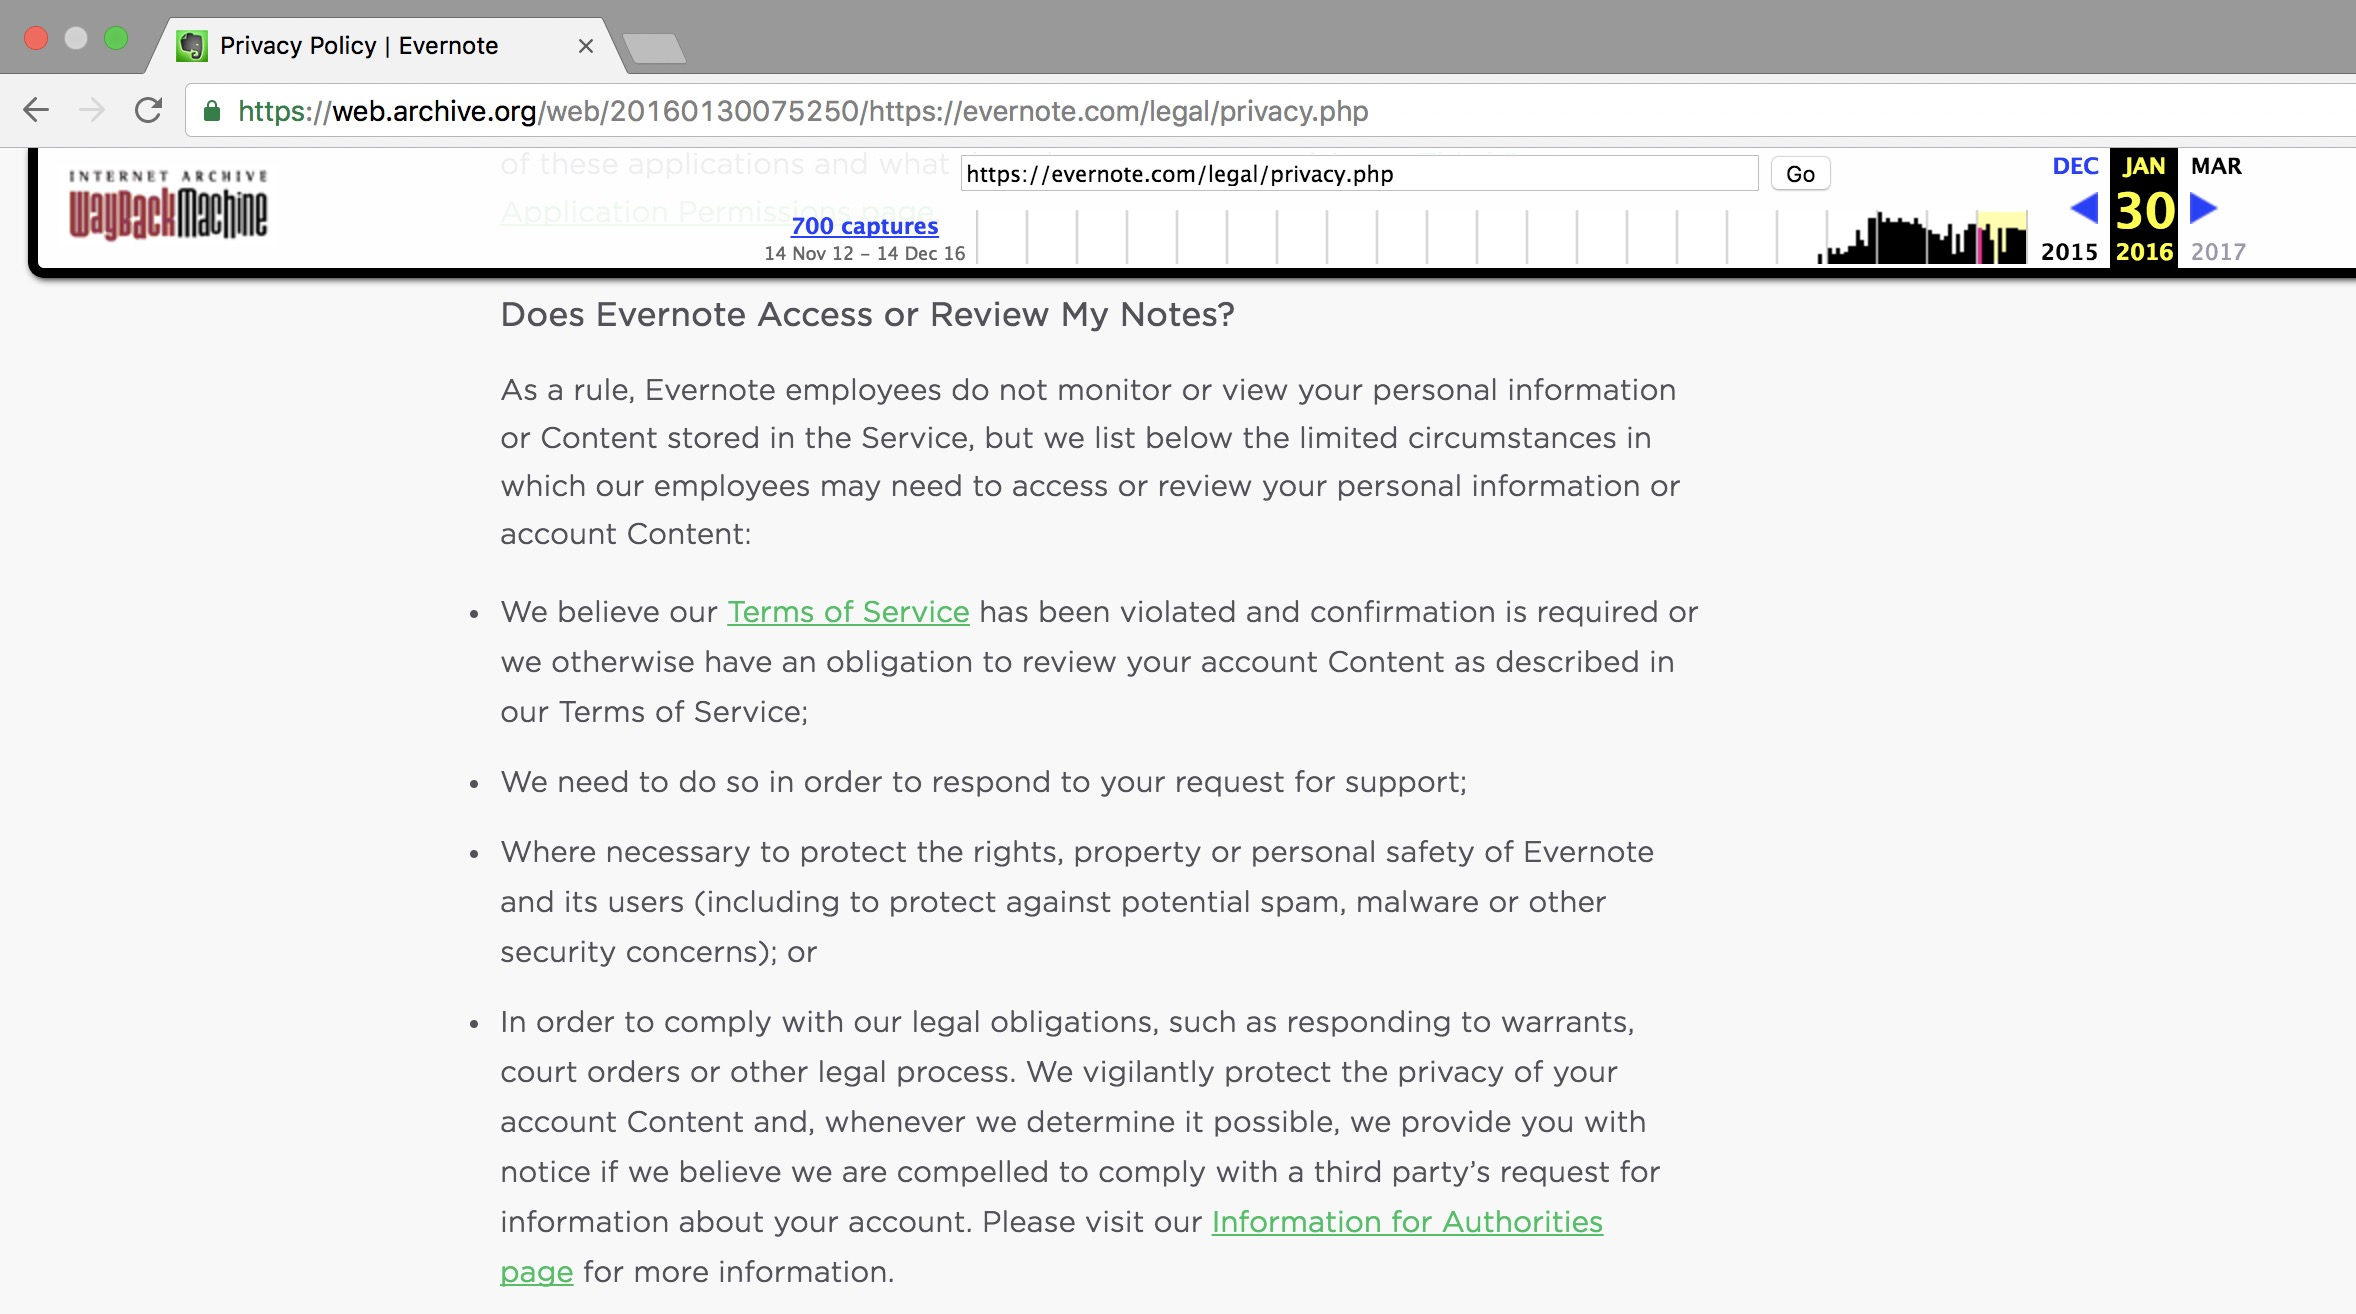 evernote-privacy-policy-wayback